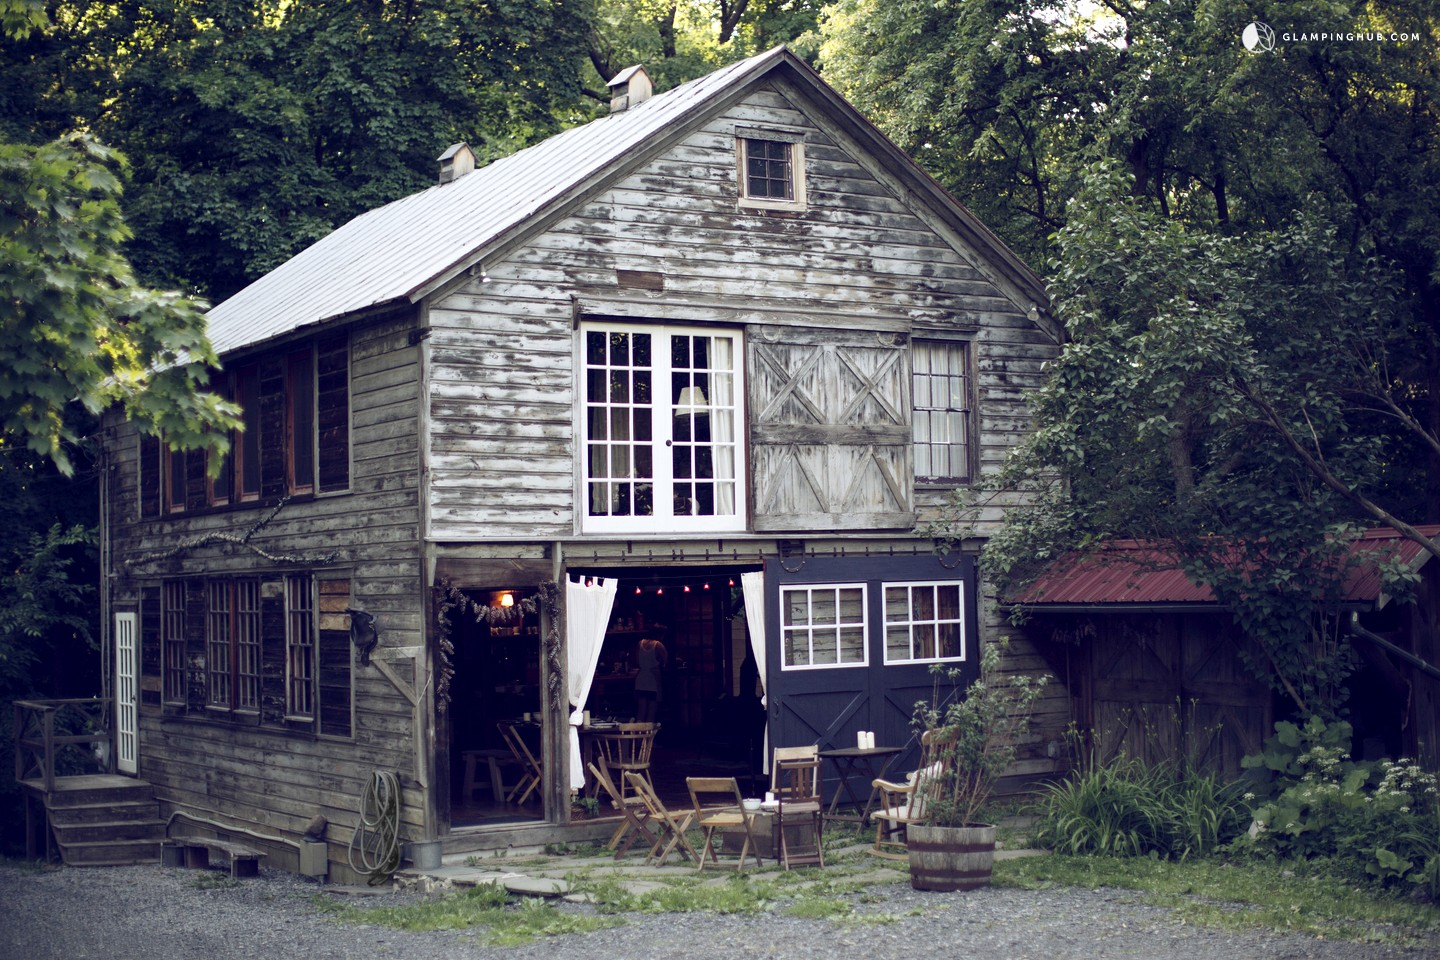 Tivoli Ny Images Unique Cabins Upstate Ny Renovated Barn Upstate Ny